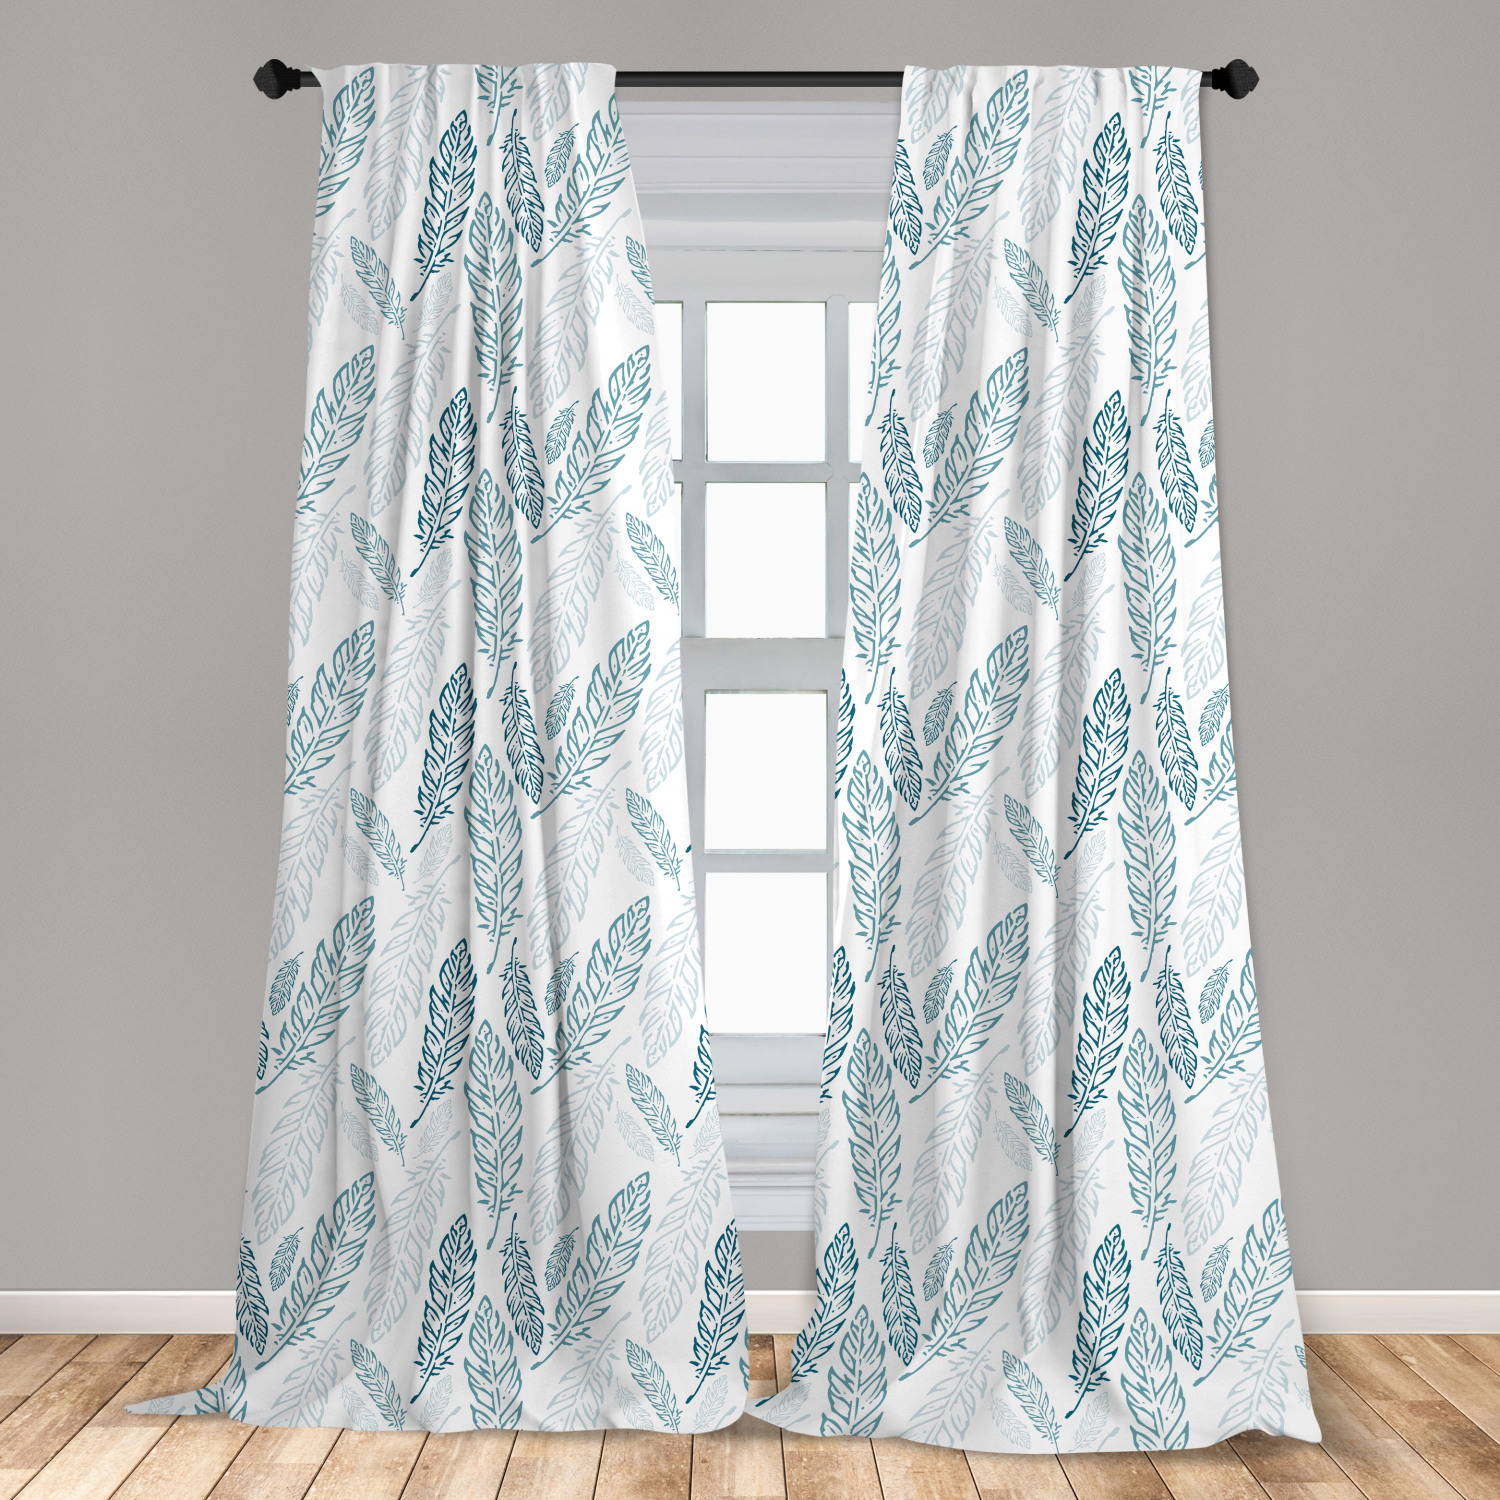 Teal And White Curtains 2 Panels Set Pastel Colored Grunge Looking Feathers Flying Bohemian Ethnic Window Drapes For Living Room Bedroom Teal Dark Blue White By Ambesonne Walmart Com Walmart Com